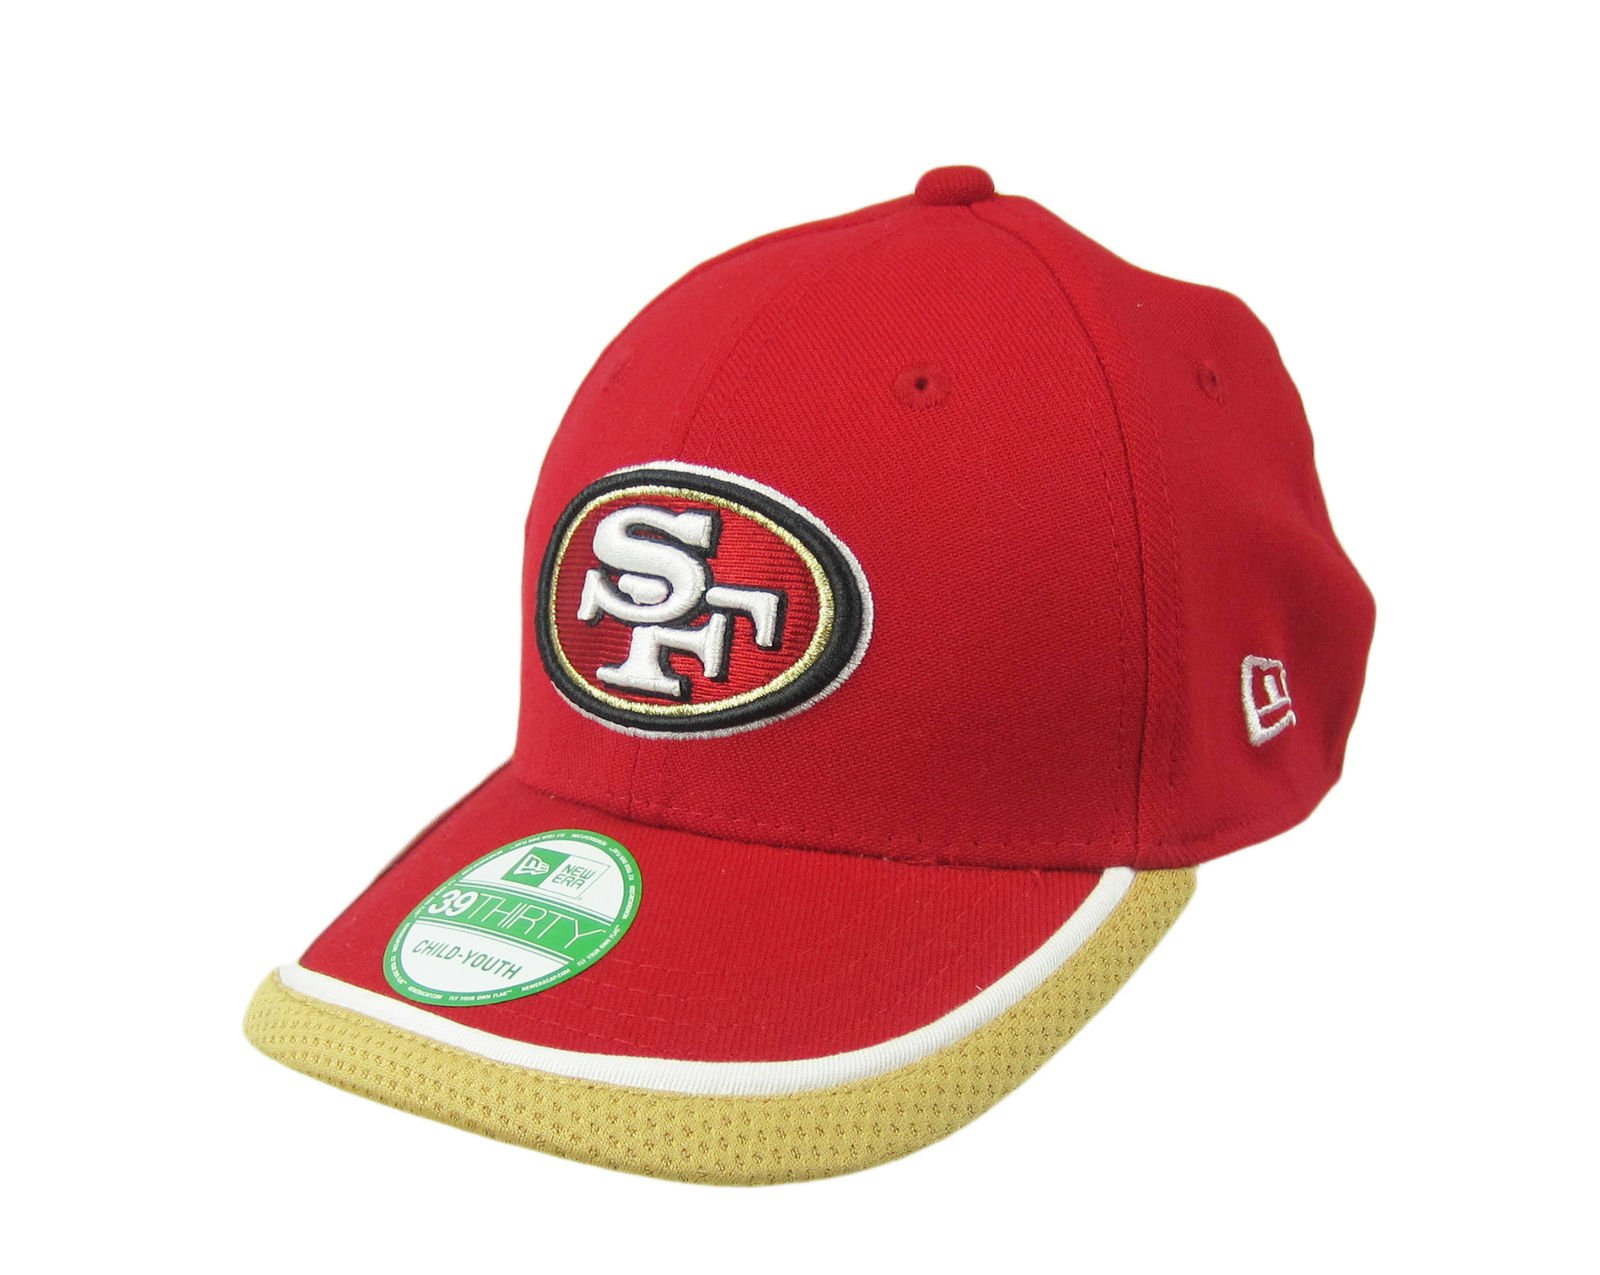 e95ee5c11b511 Details about New Era 39Thirty San Francisco 49ers Child-Youth Red Cap Hat  NWT